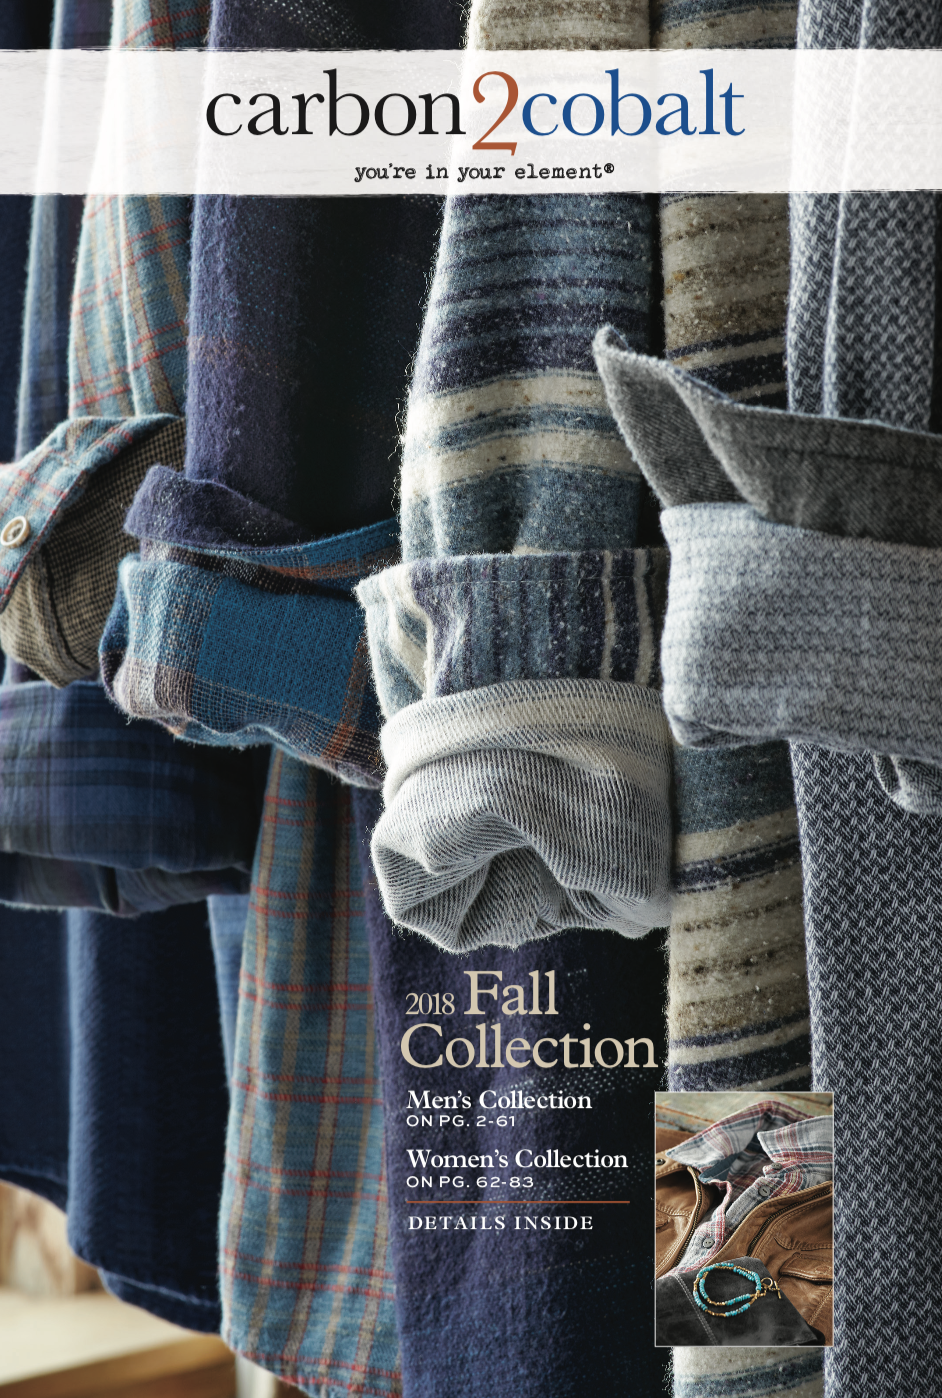 2018 Fall Collection - Discover new elements that you'll love to wear — take a look at our Men's and Women's collection for the upcoming Fall season. Filled with details you love and won't find anywhere else.